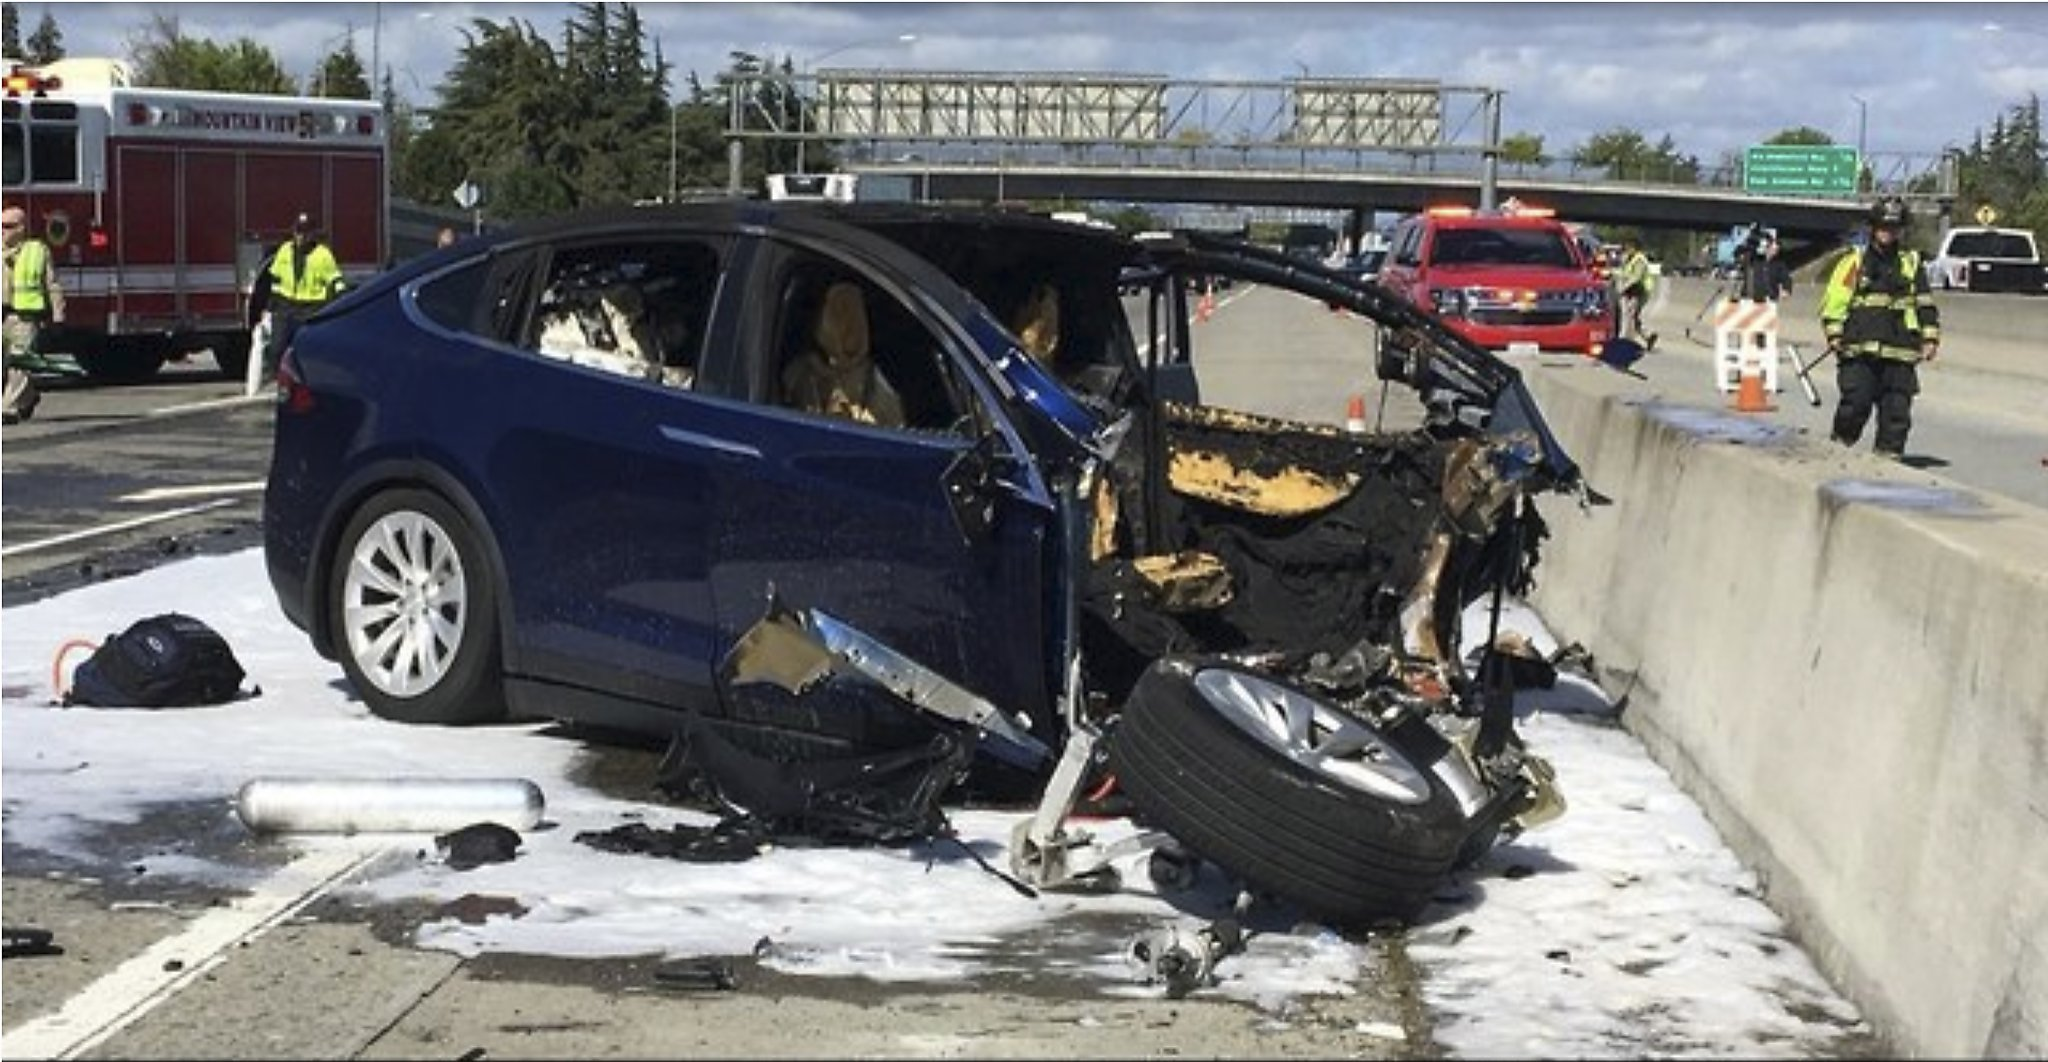 Tesla Driver Died Using Autopilot, With Hands Off Steering Wheel ...